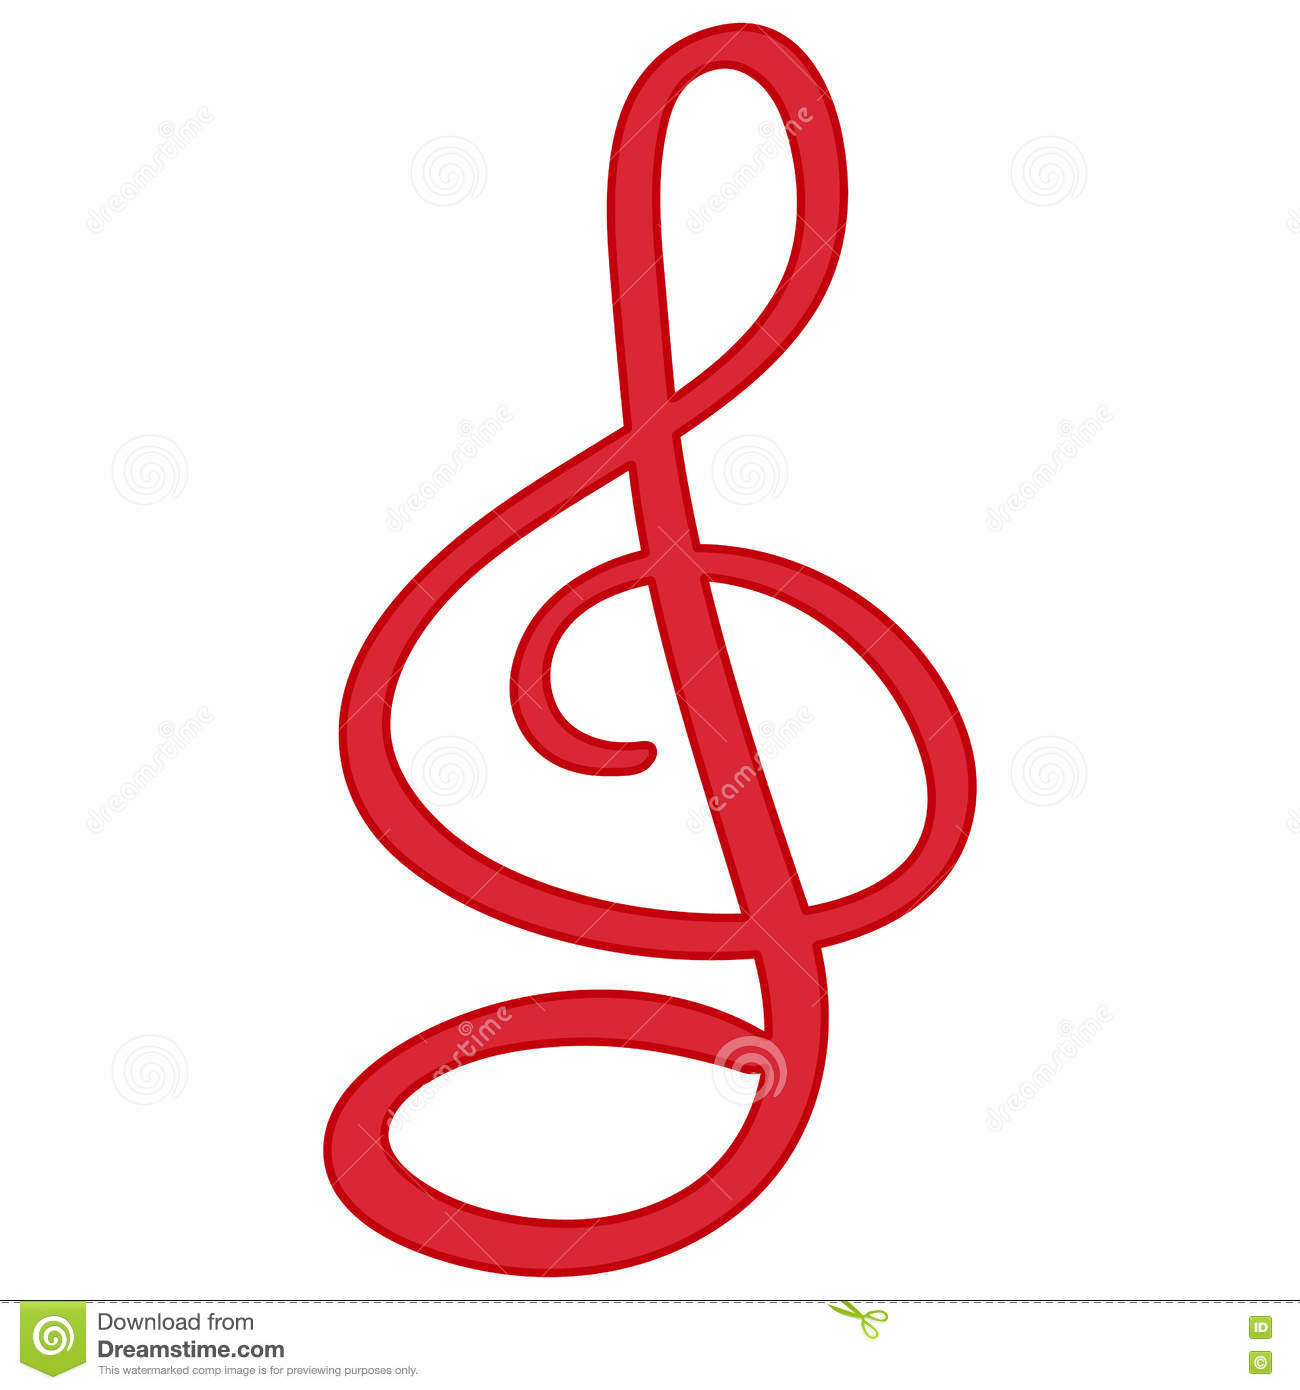 Red Treble Clef Isolated Symbol Stock Illustration Illustration Of